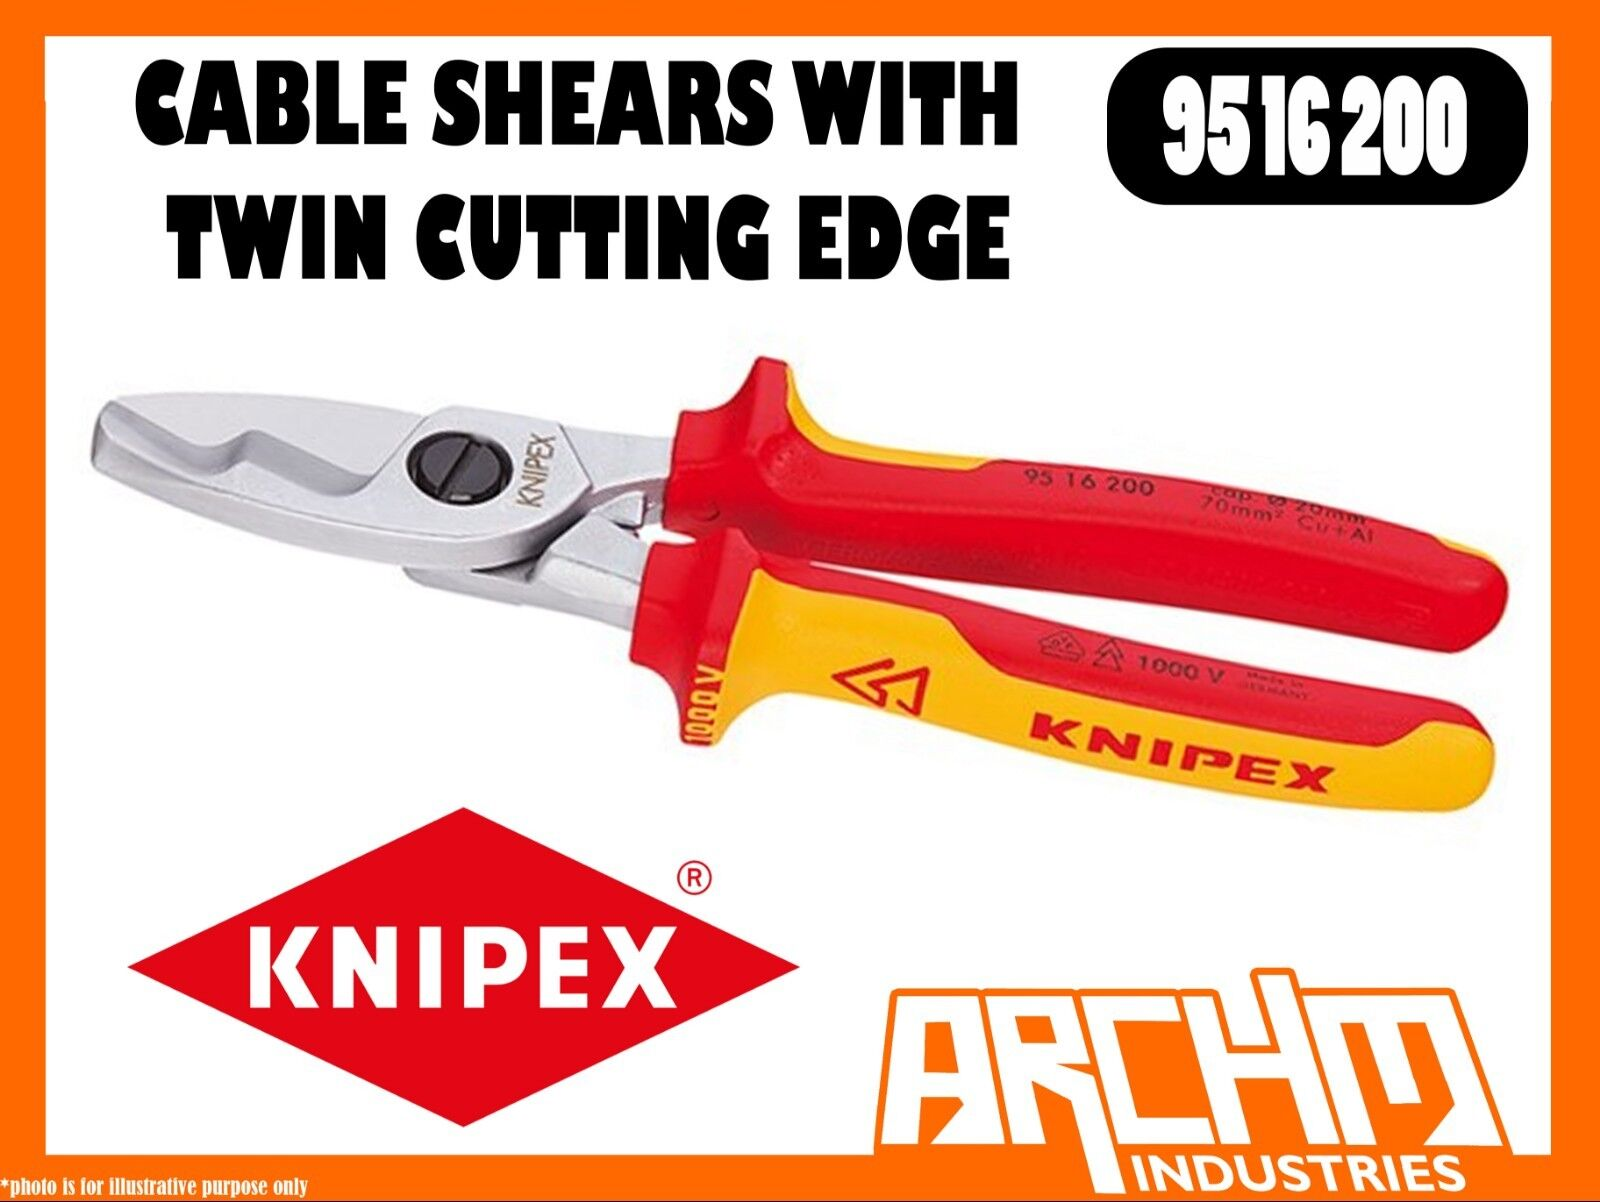 KNIPEX 9516200 - CABLE SHEARS - TWIN CUTTING EDGE - 200MM - 1000 VDE - HARDENED